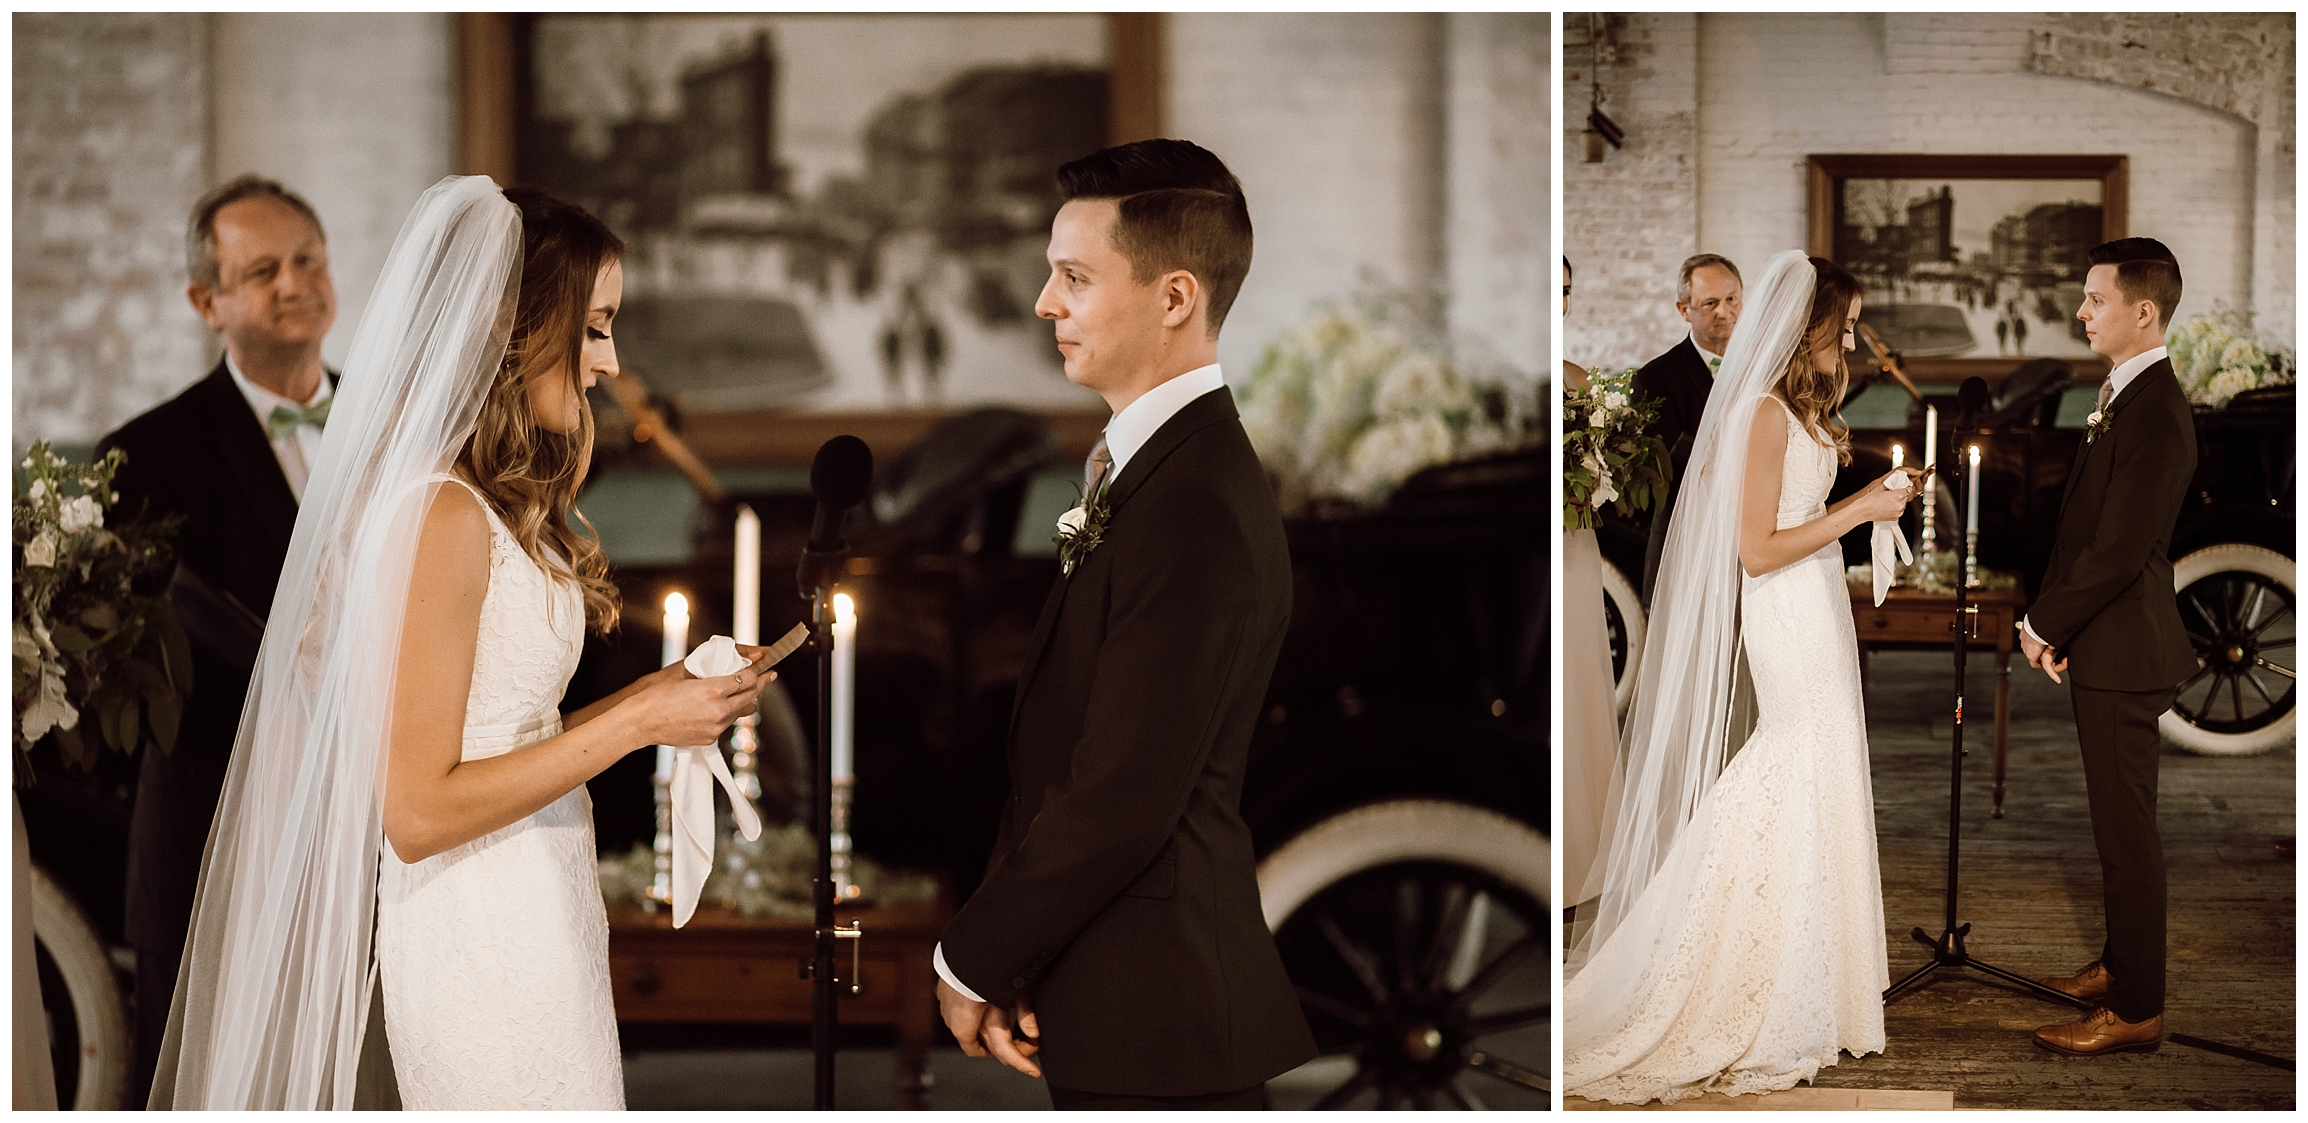 Katie_Vonasek_Photography_Ford_Piquette_Plant_Wedding_Detroit72.JPG